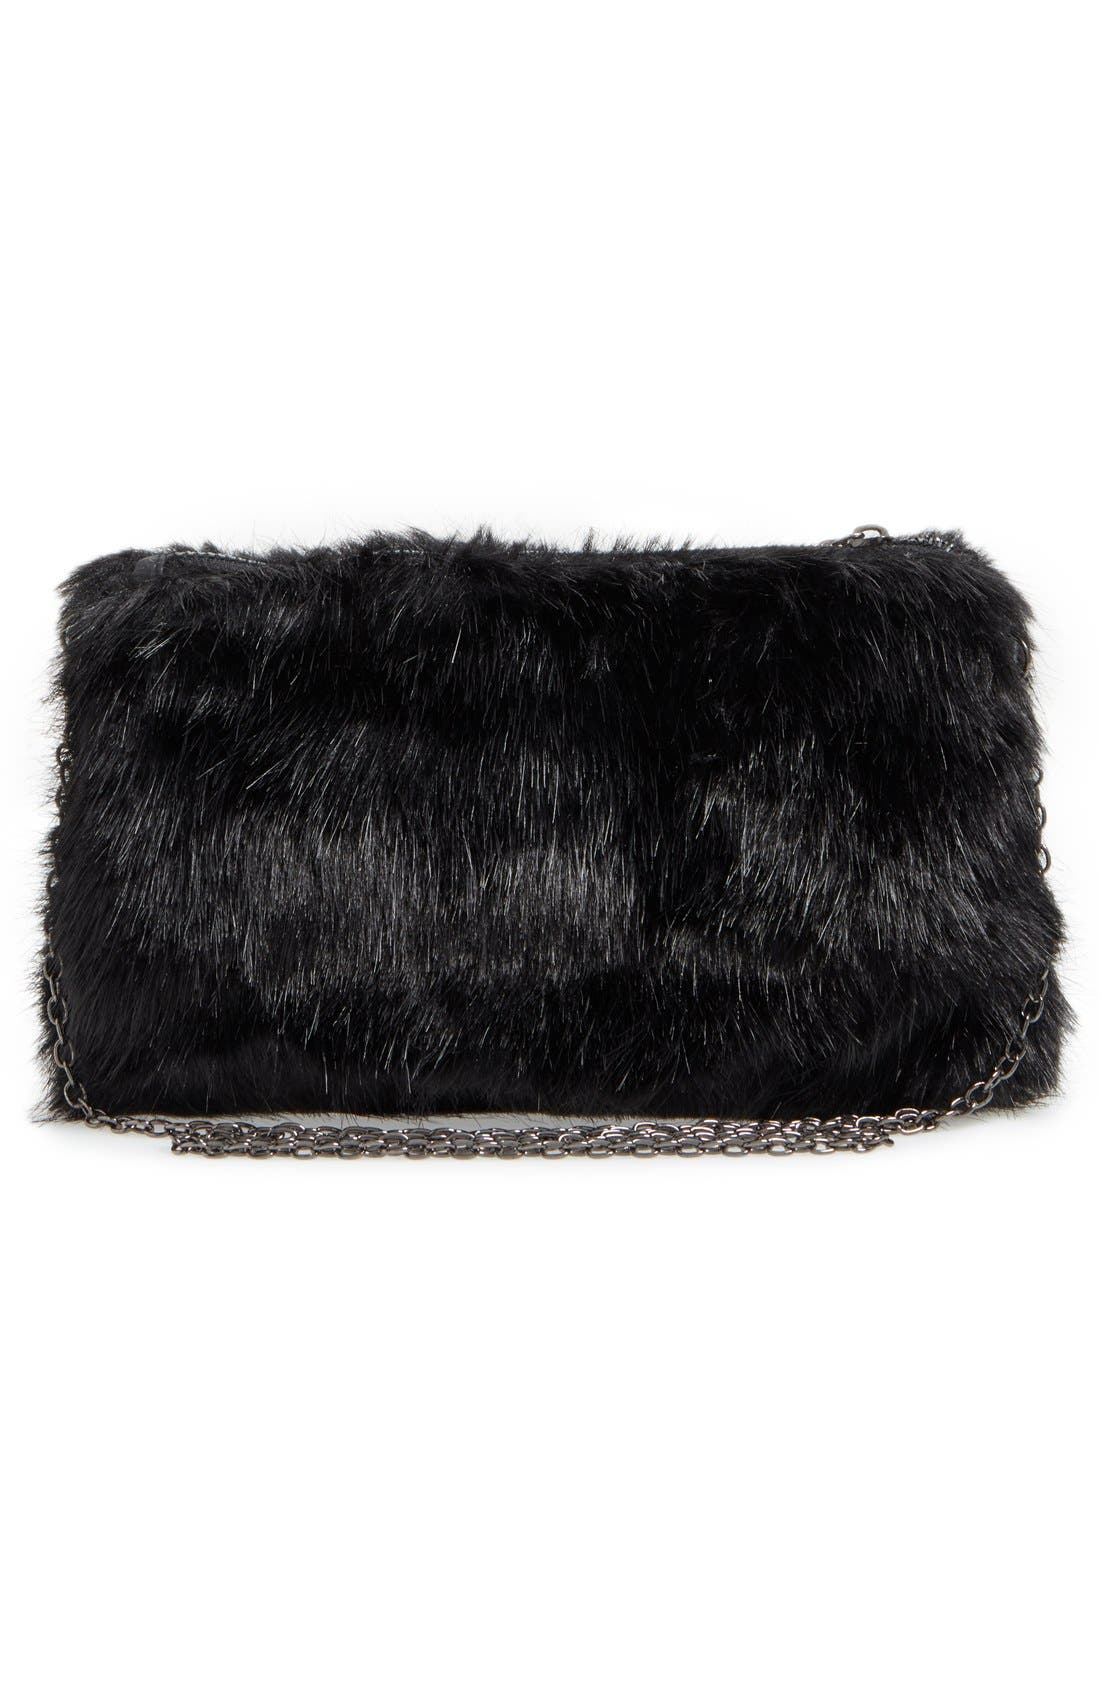 Alternate Image 3  - BP. Faux Fur Clutch